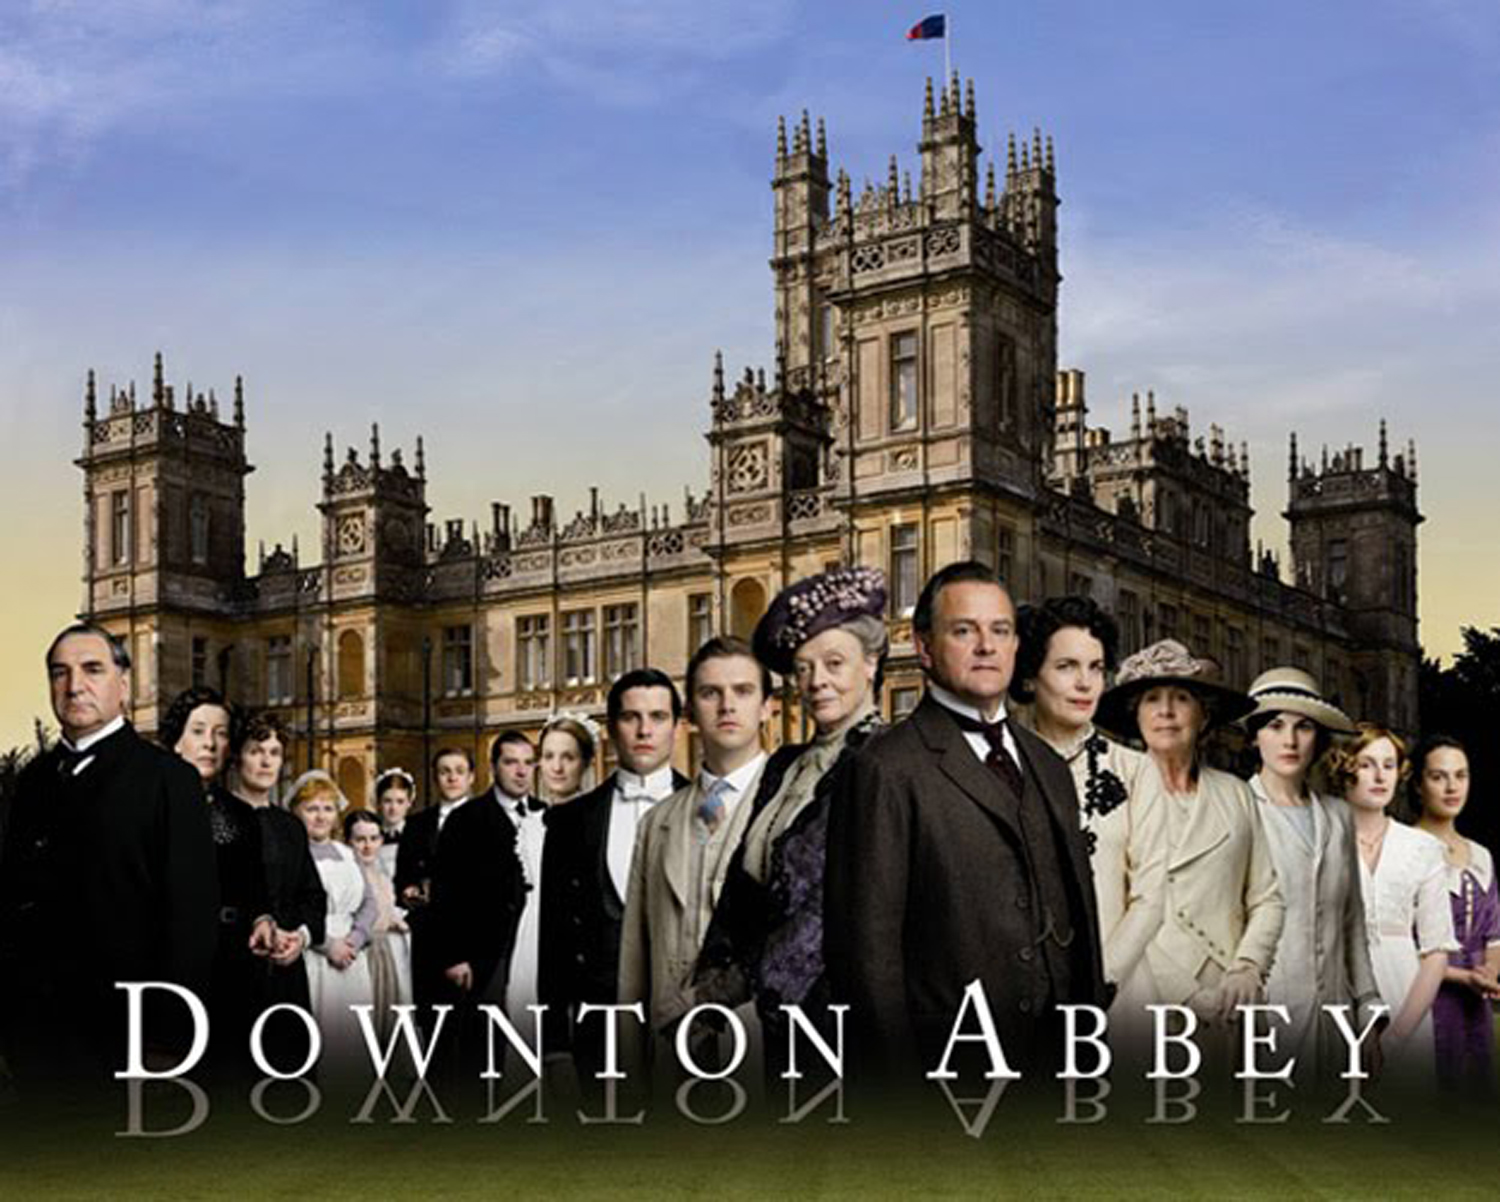 https://i1.wp.com/cdn.phillymag.com/wp-content/uploads/2013/02/DowntonAbbey1.jpg